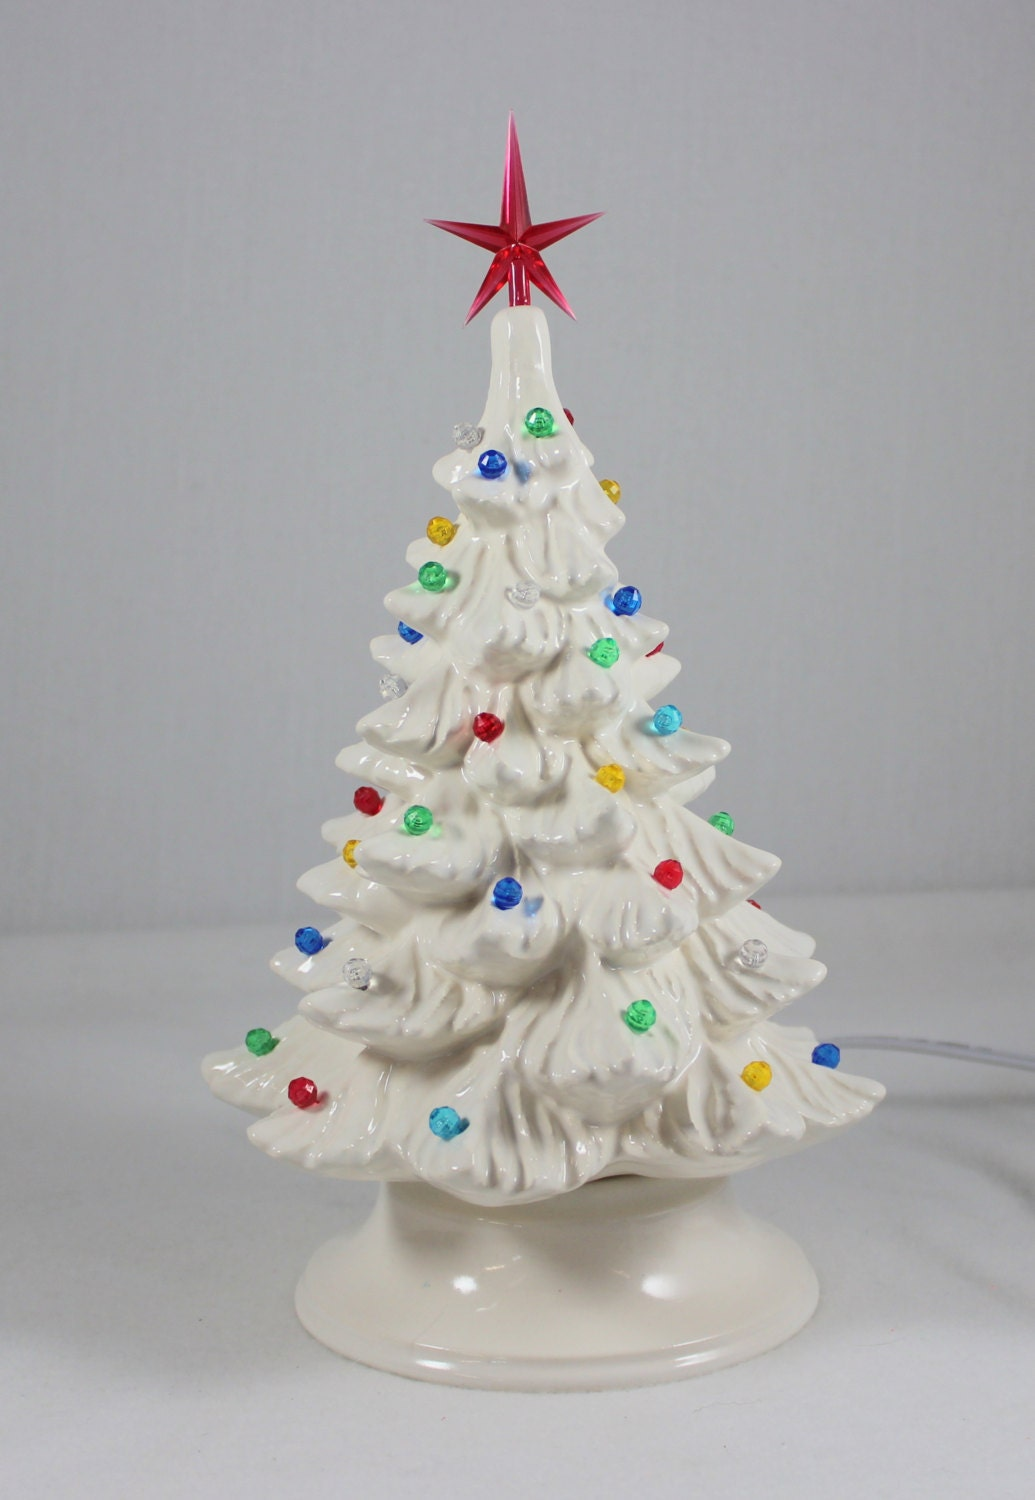 Christmas Pottery Barn Knock Offs And Others Too: Ceramic Christmas Tree 11 1/2 White Handmade By